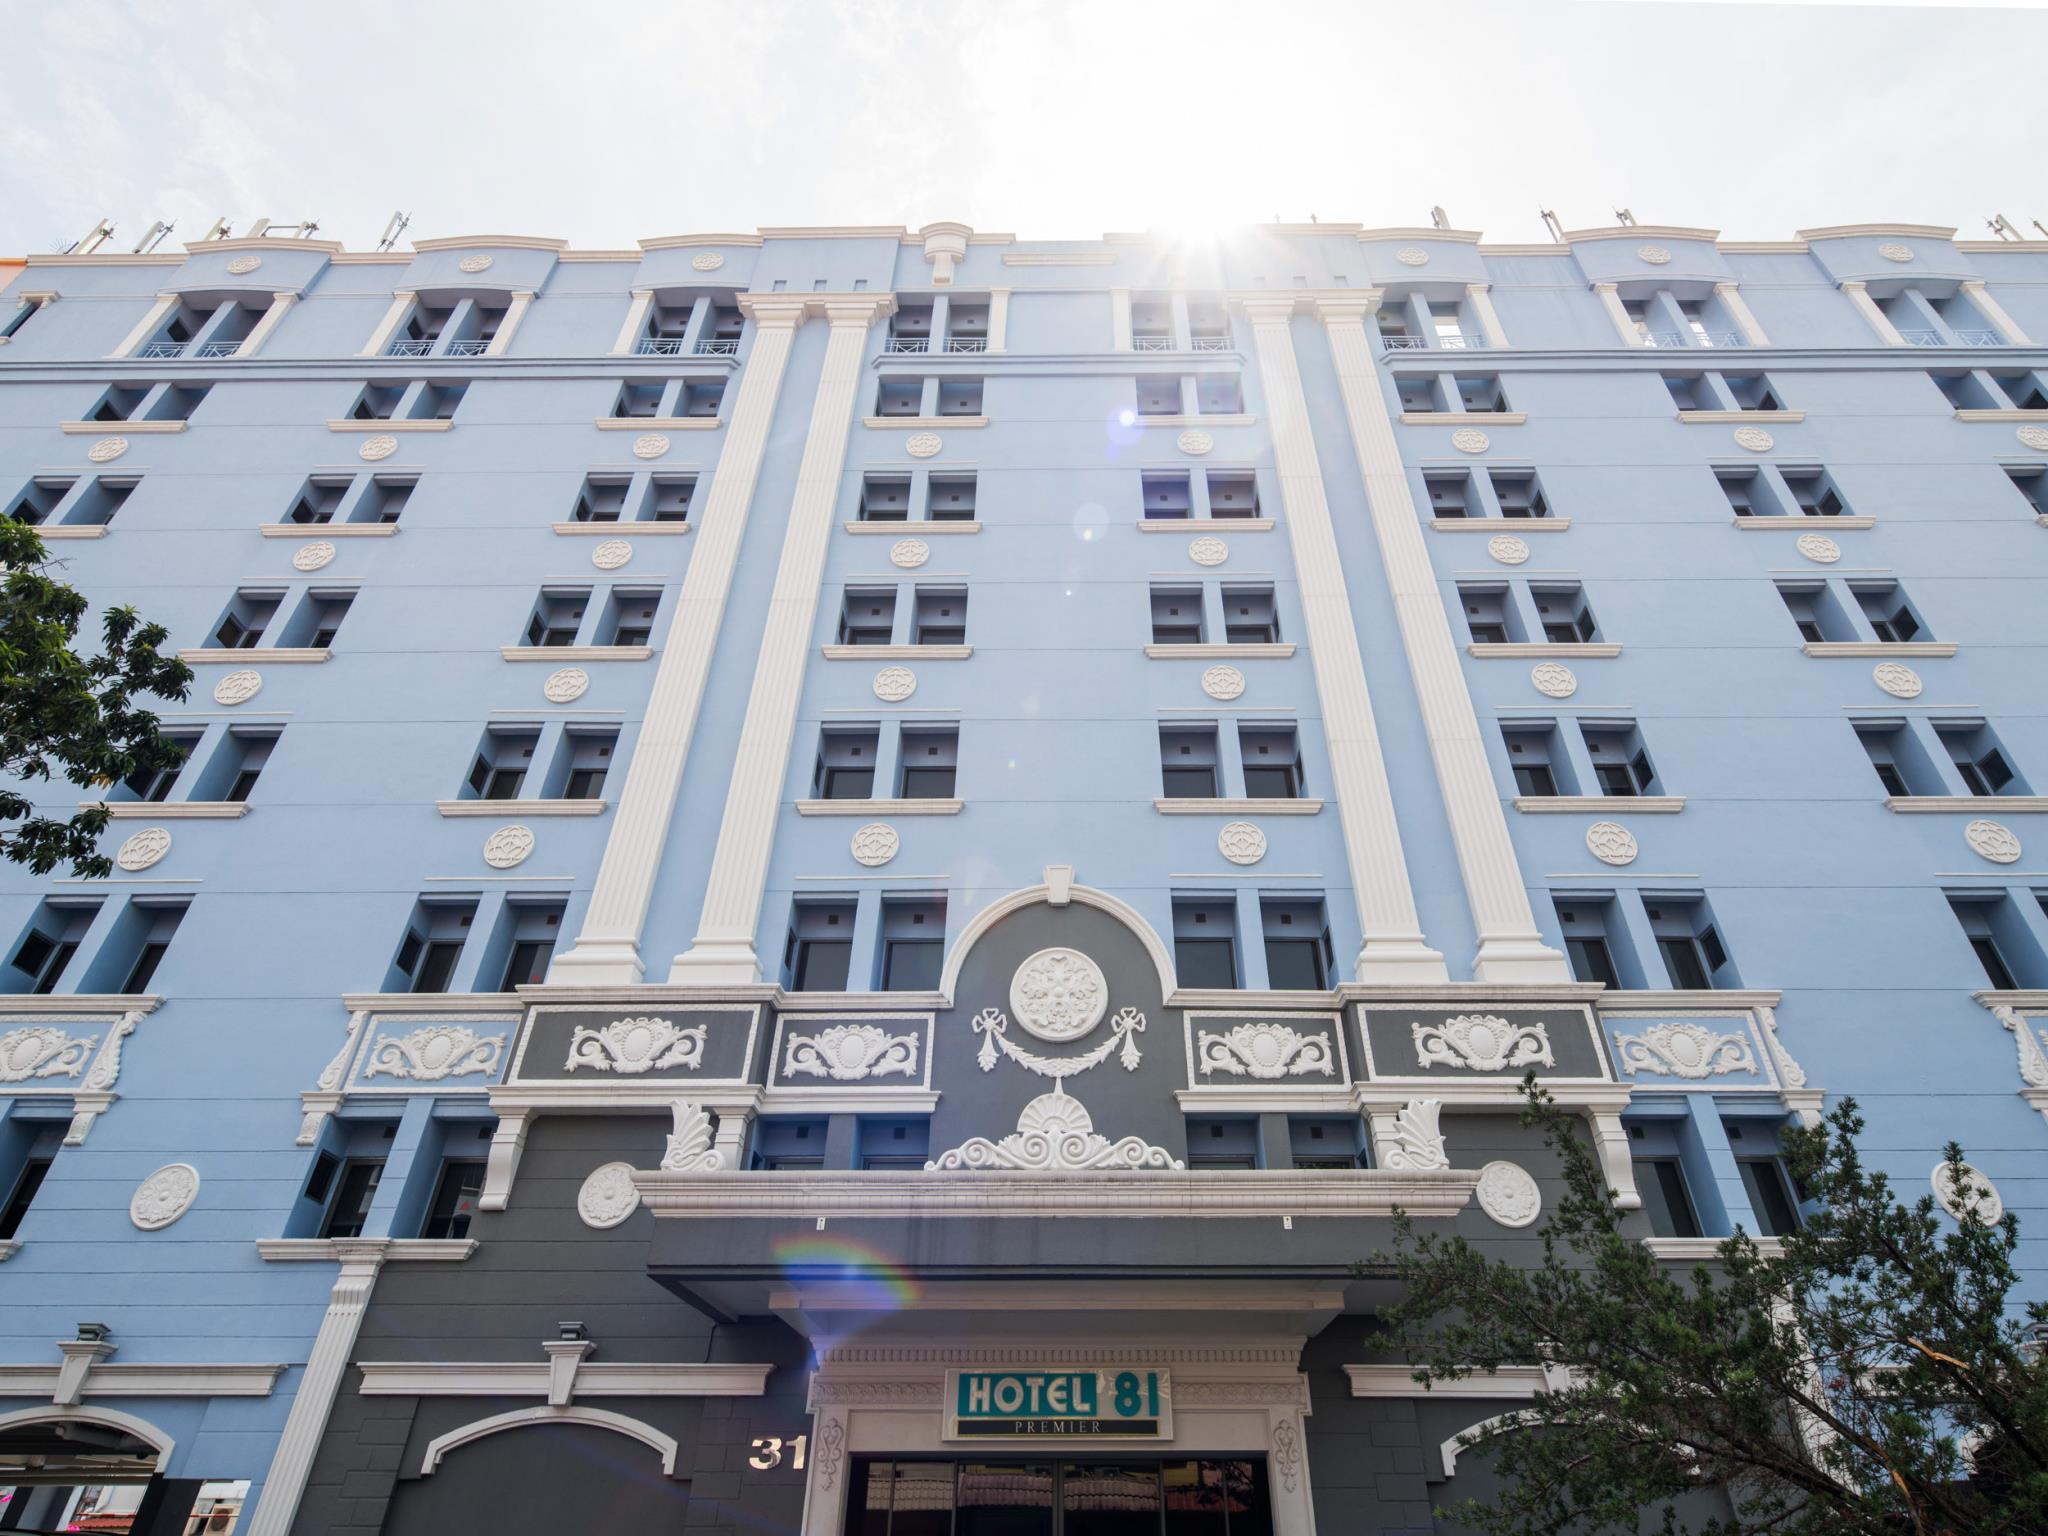 Hotel 81 premier star geylang singapore singapore for Hotels 81 in singapore